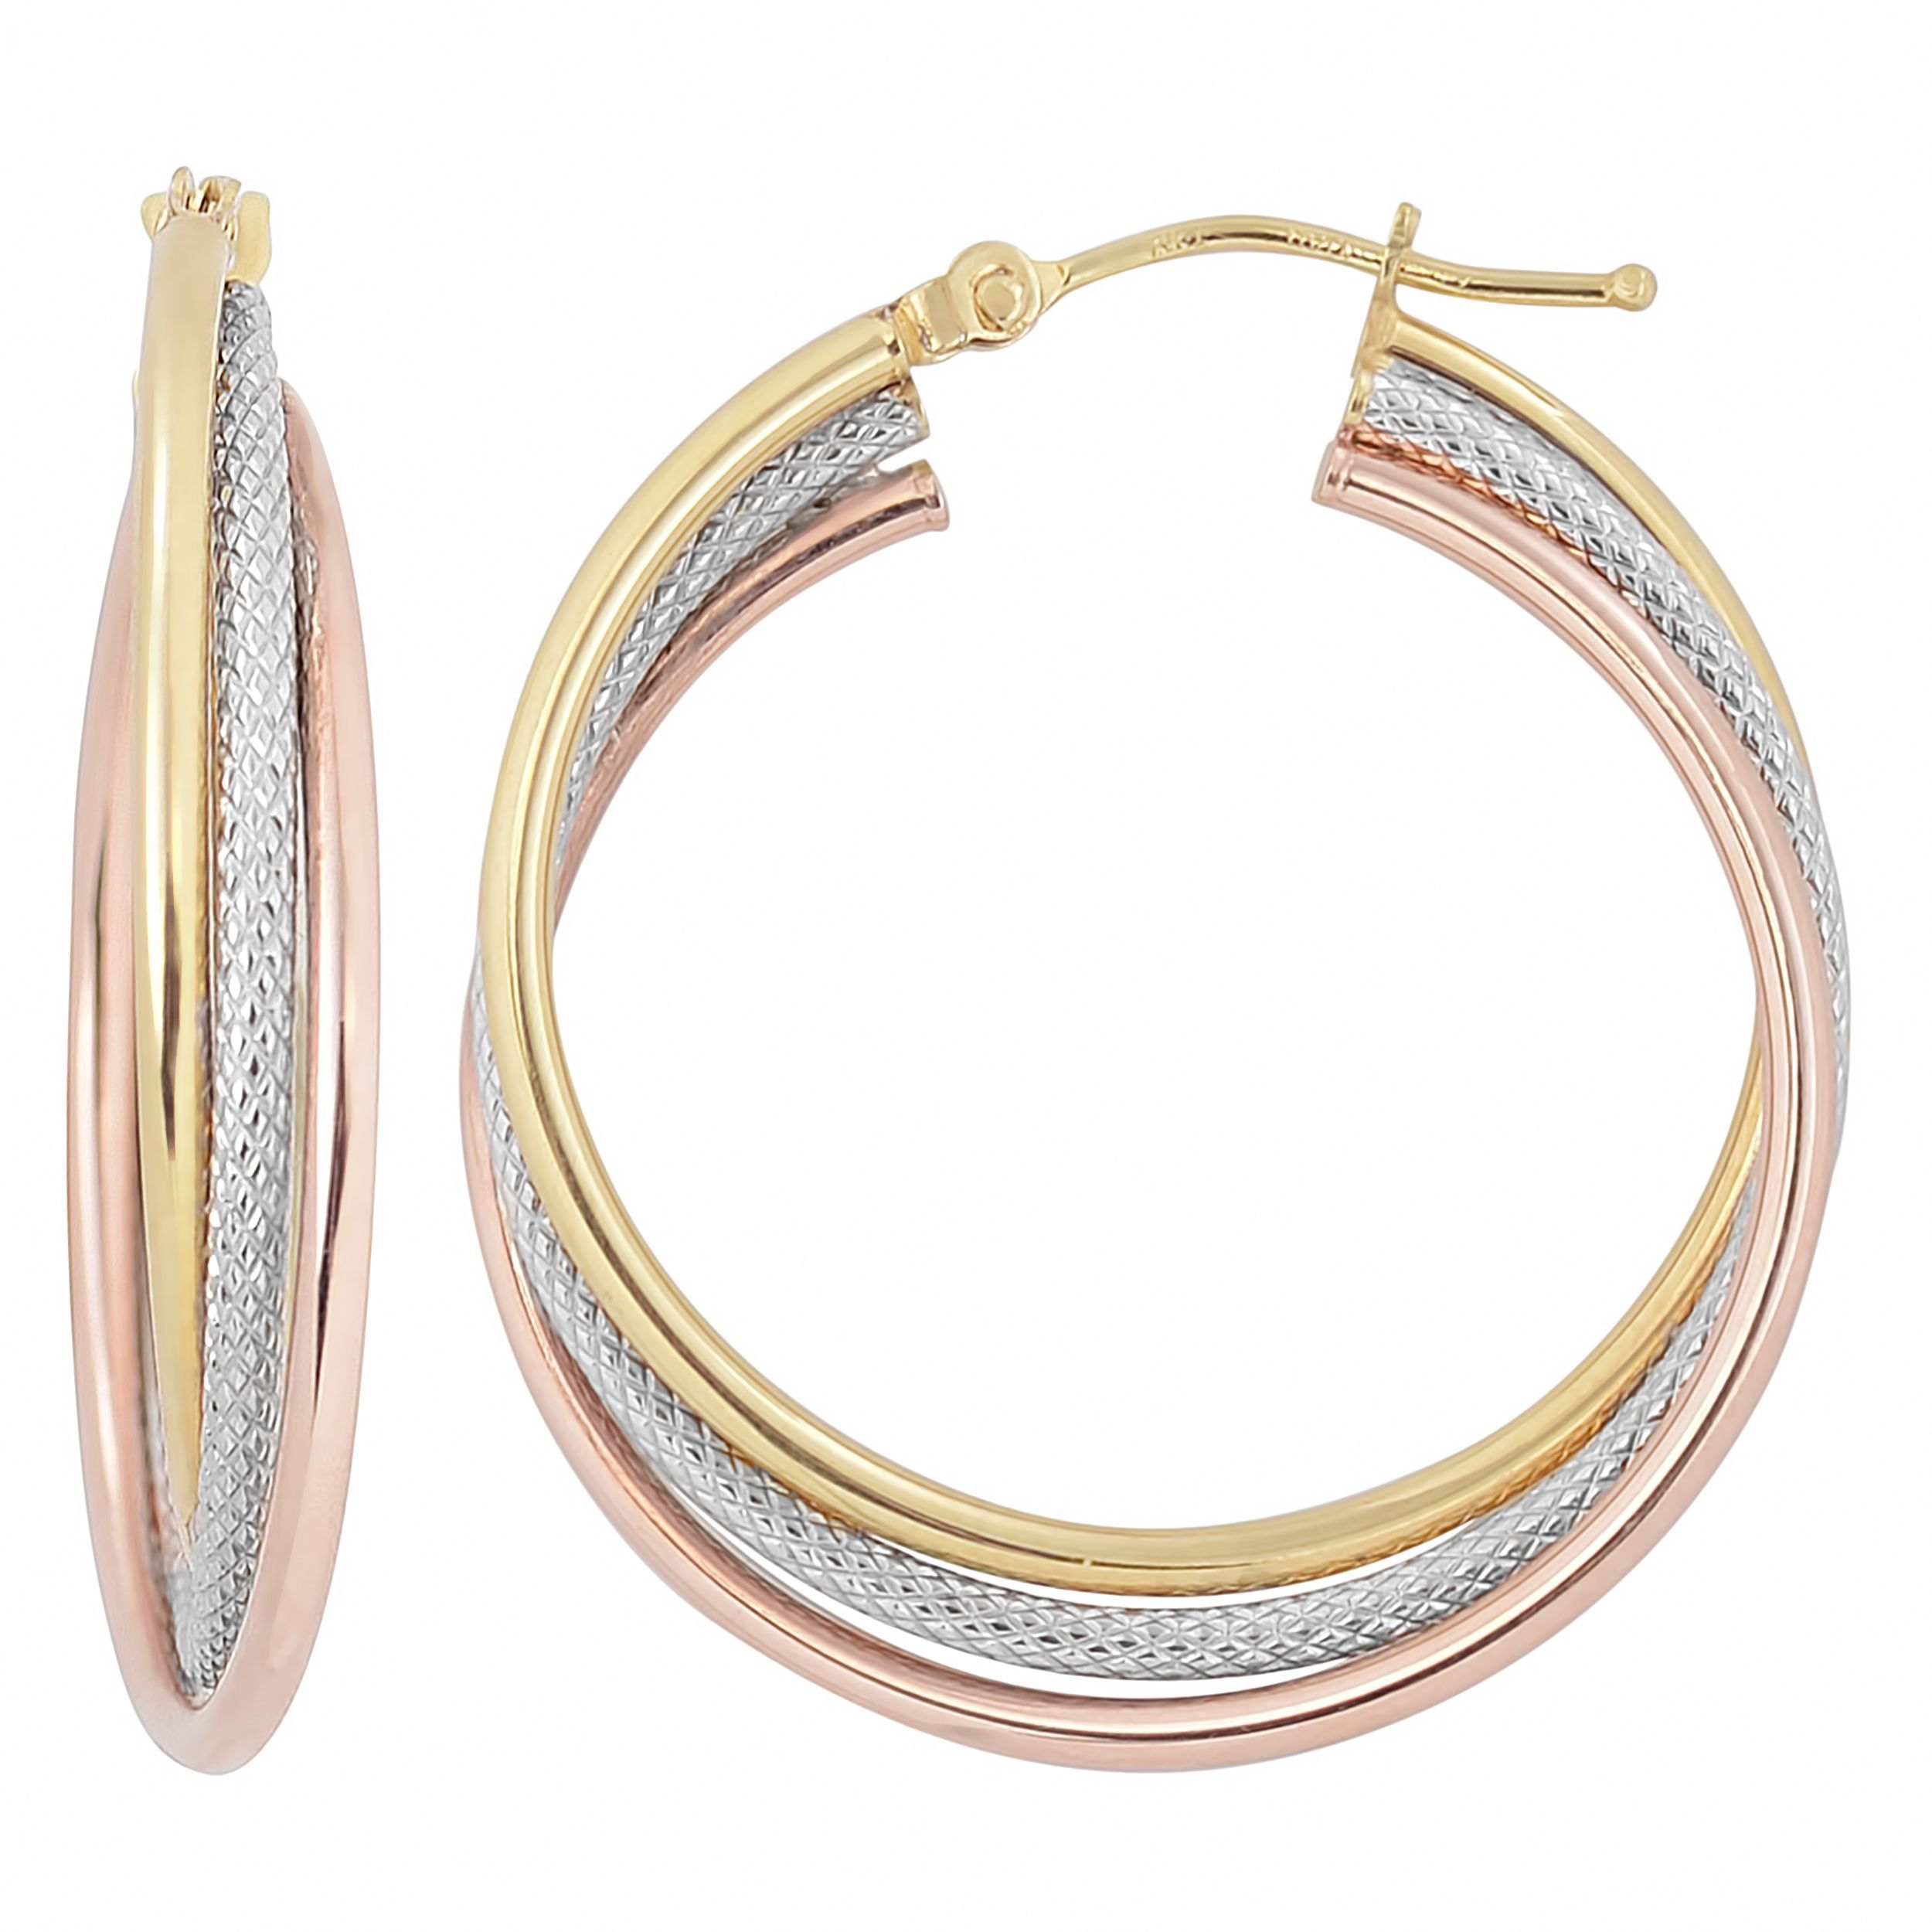 10K Two Tone Gold Textured Intertwined Round Hinged Hoop Earrings